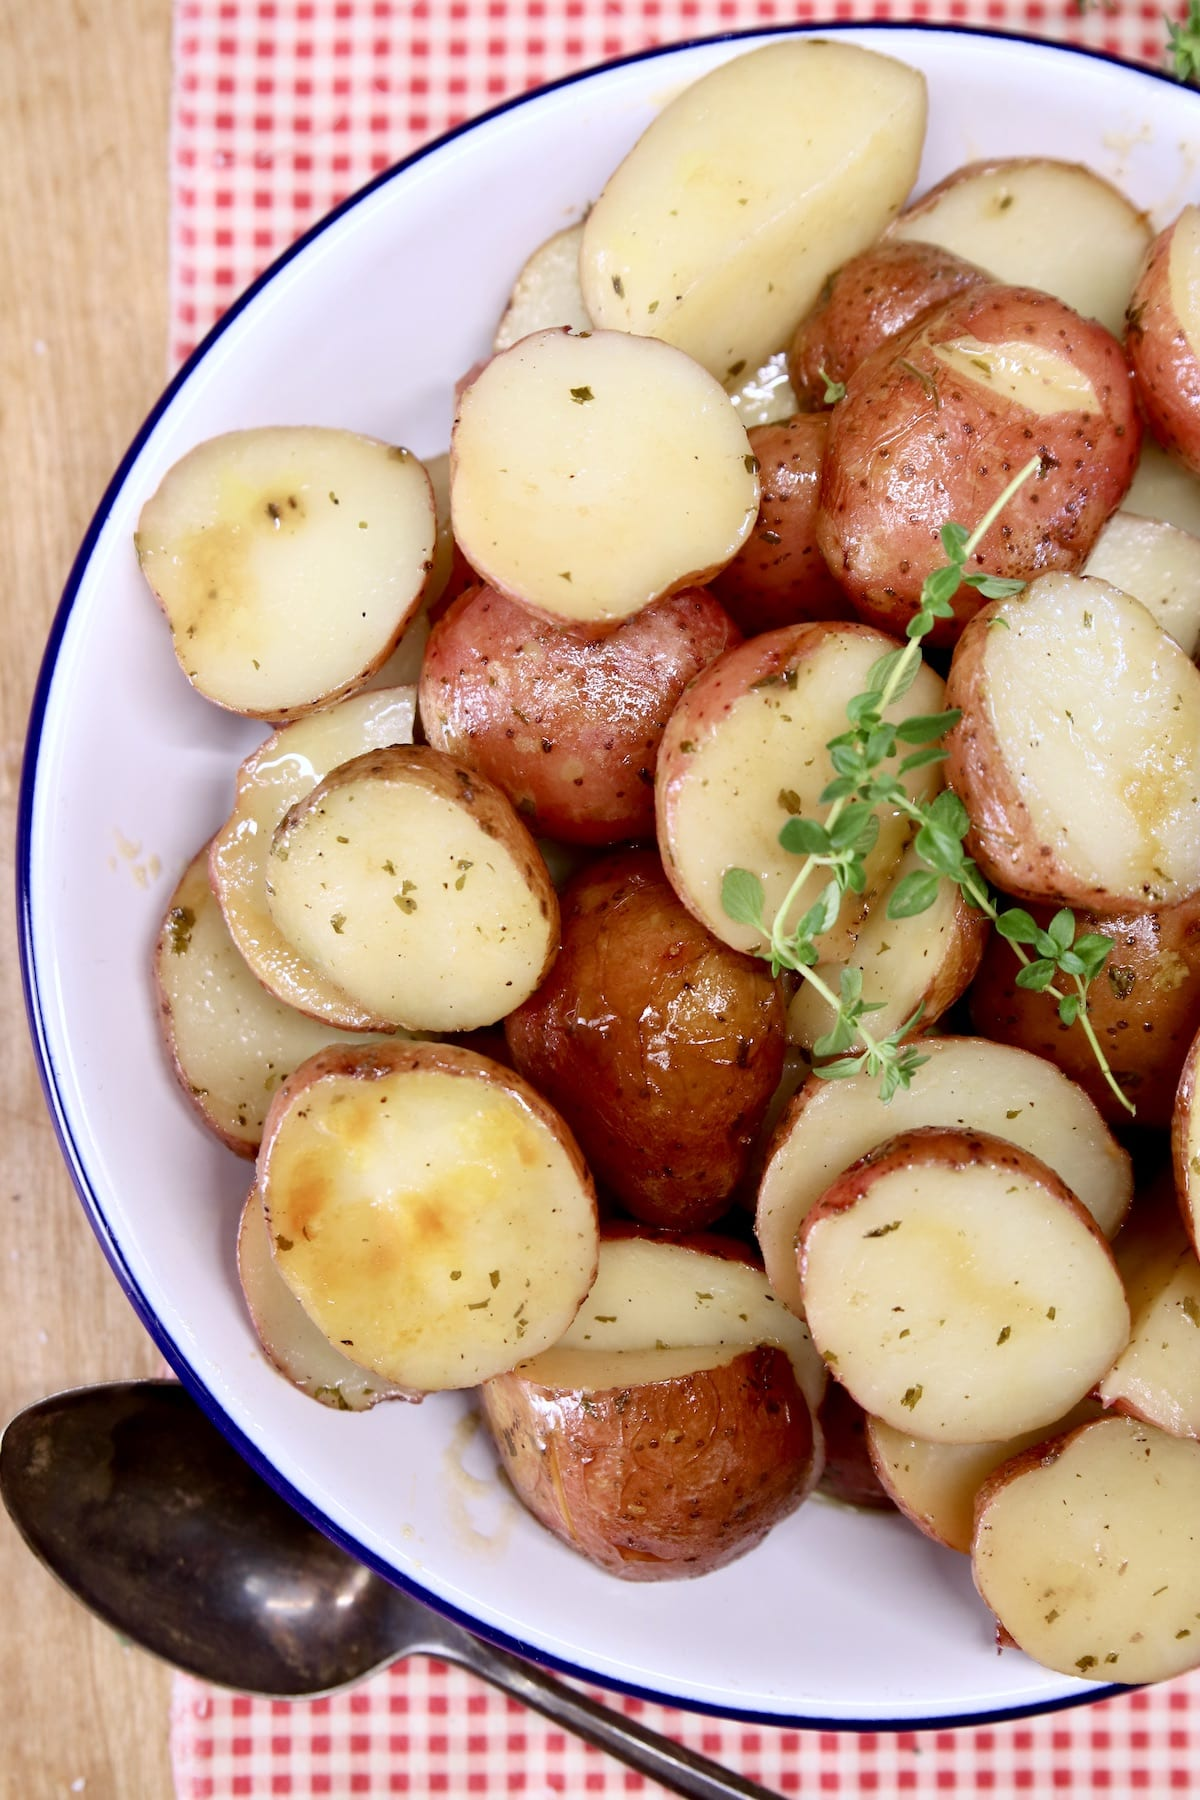 Bowl of baby red potatoes with thyme garnish